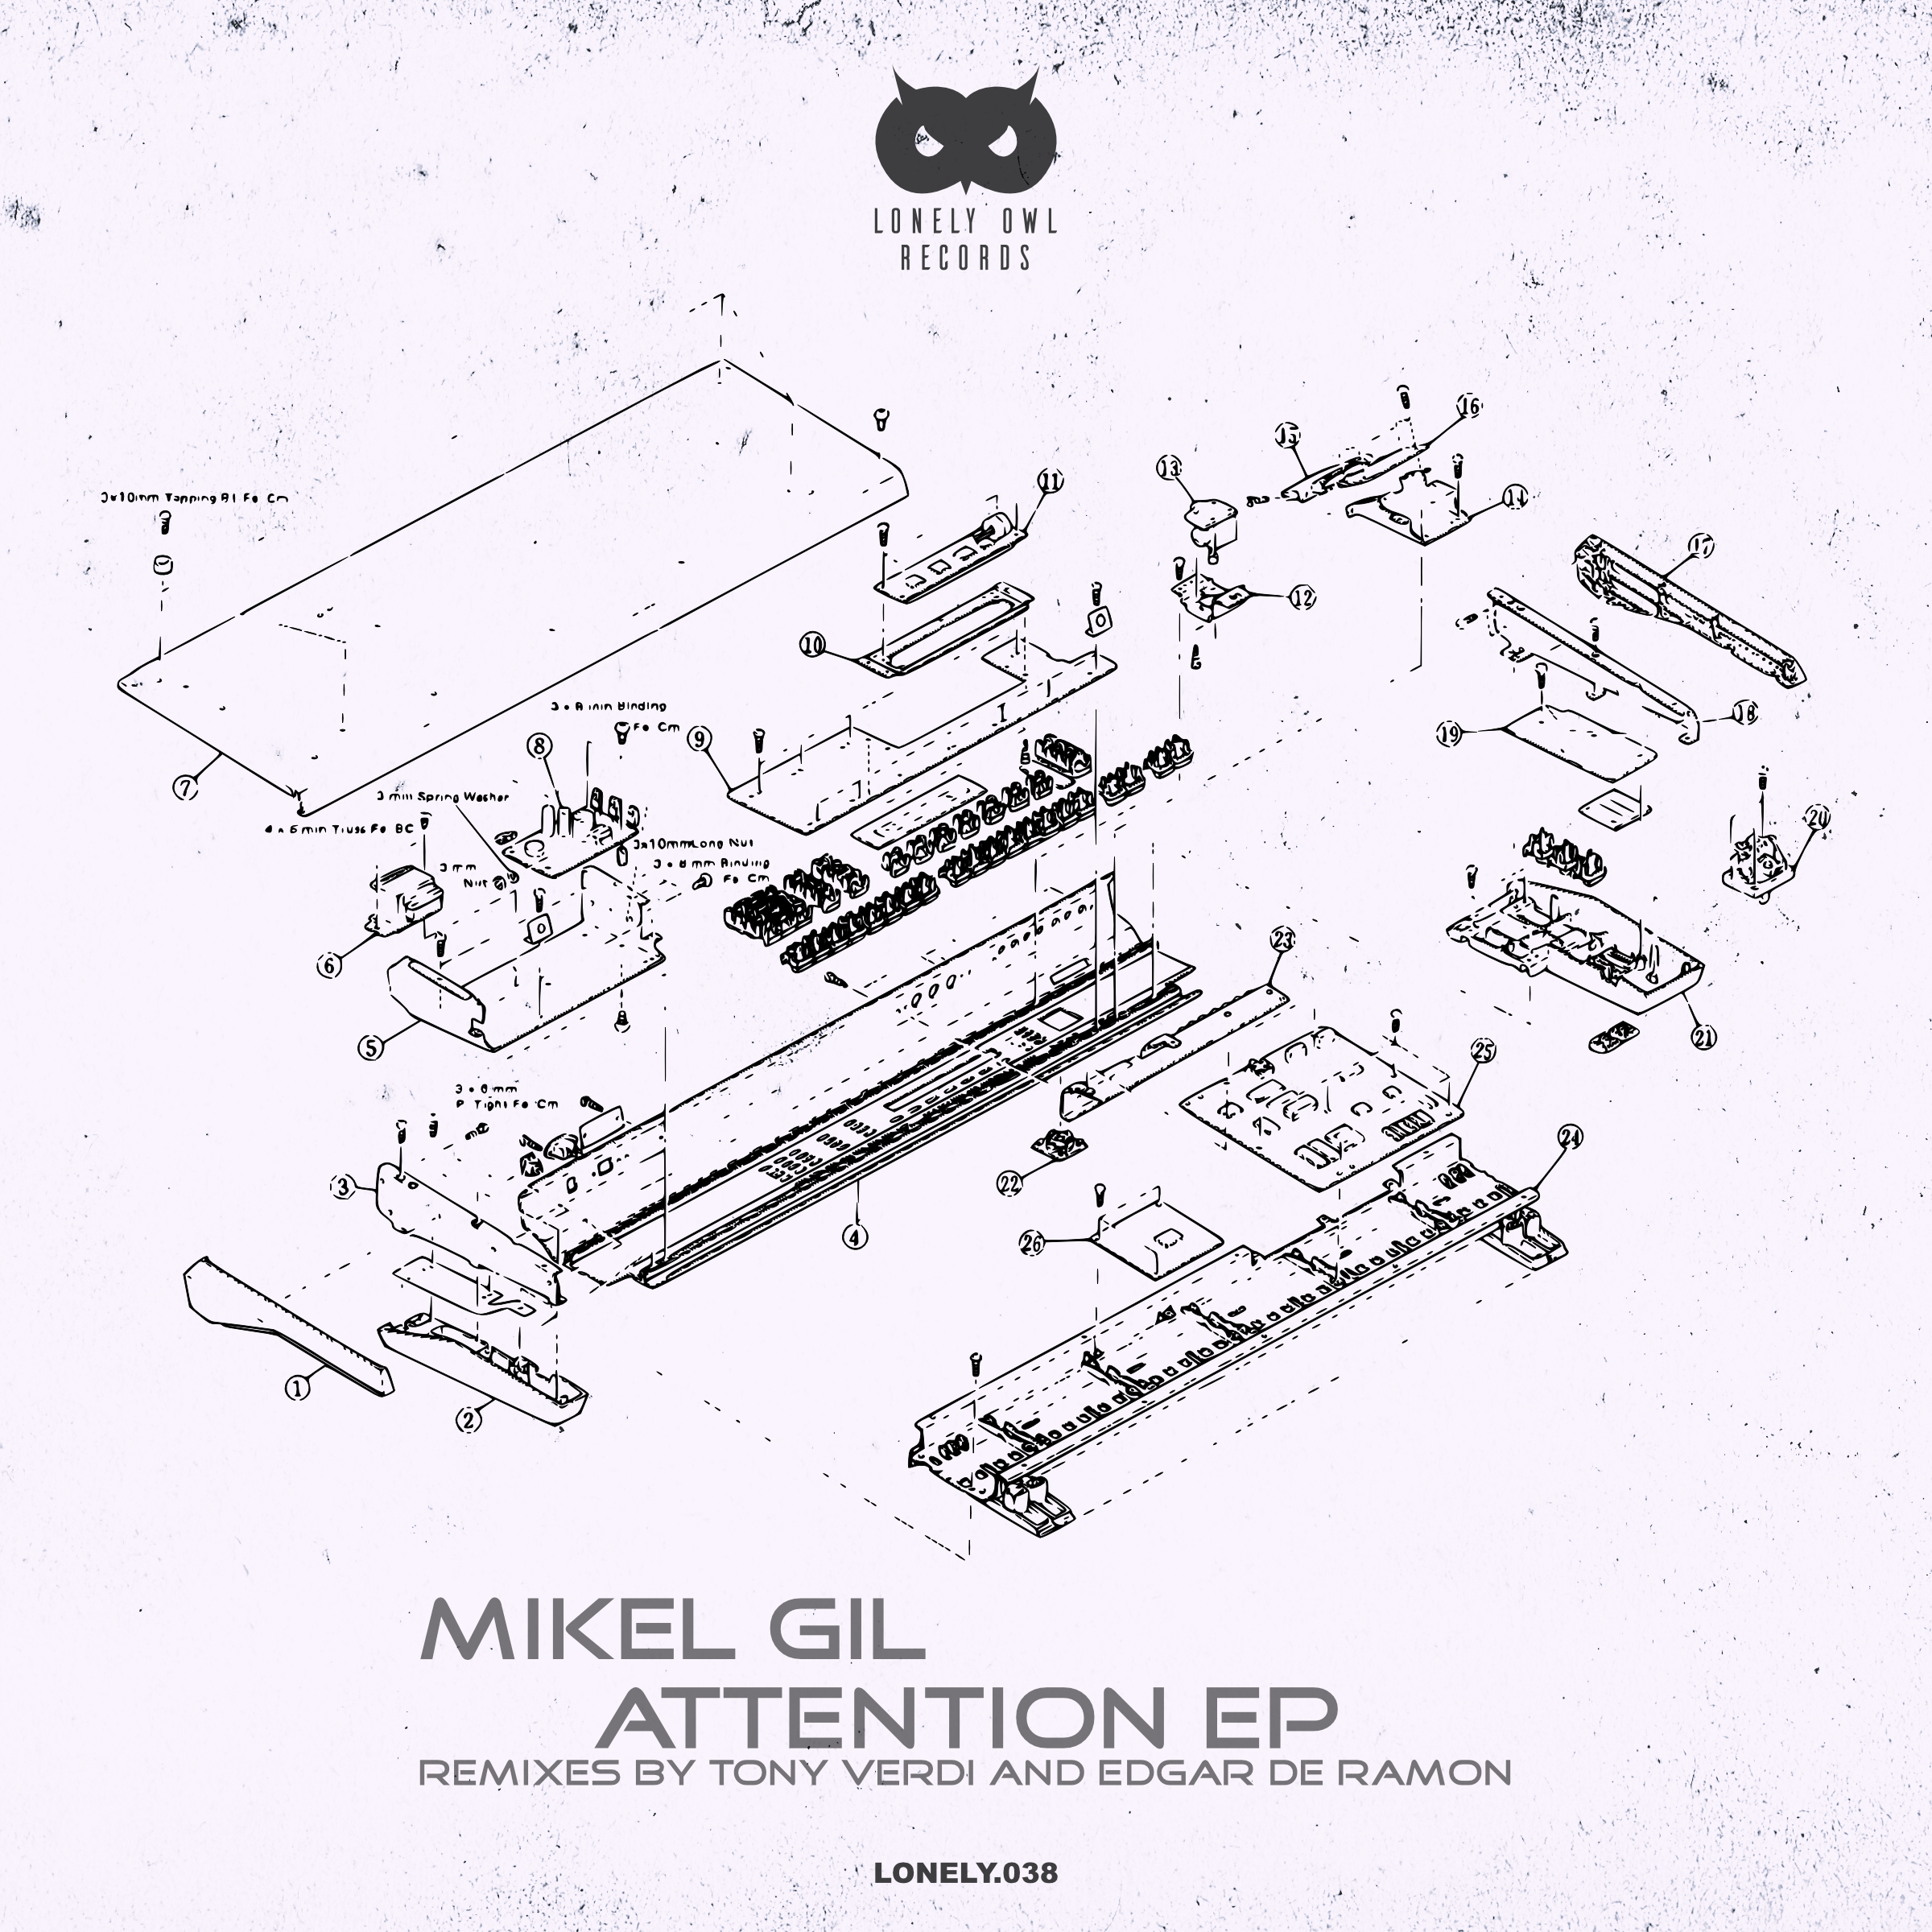 'ATTENTION' ES EL NUEVO EP DE MIKEL GIL EN LONELY OWN RECORDS Cover Lonely038